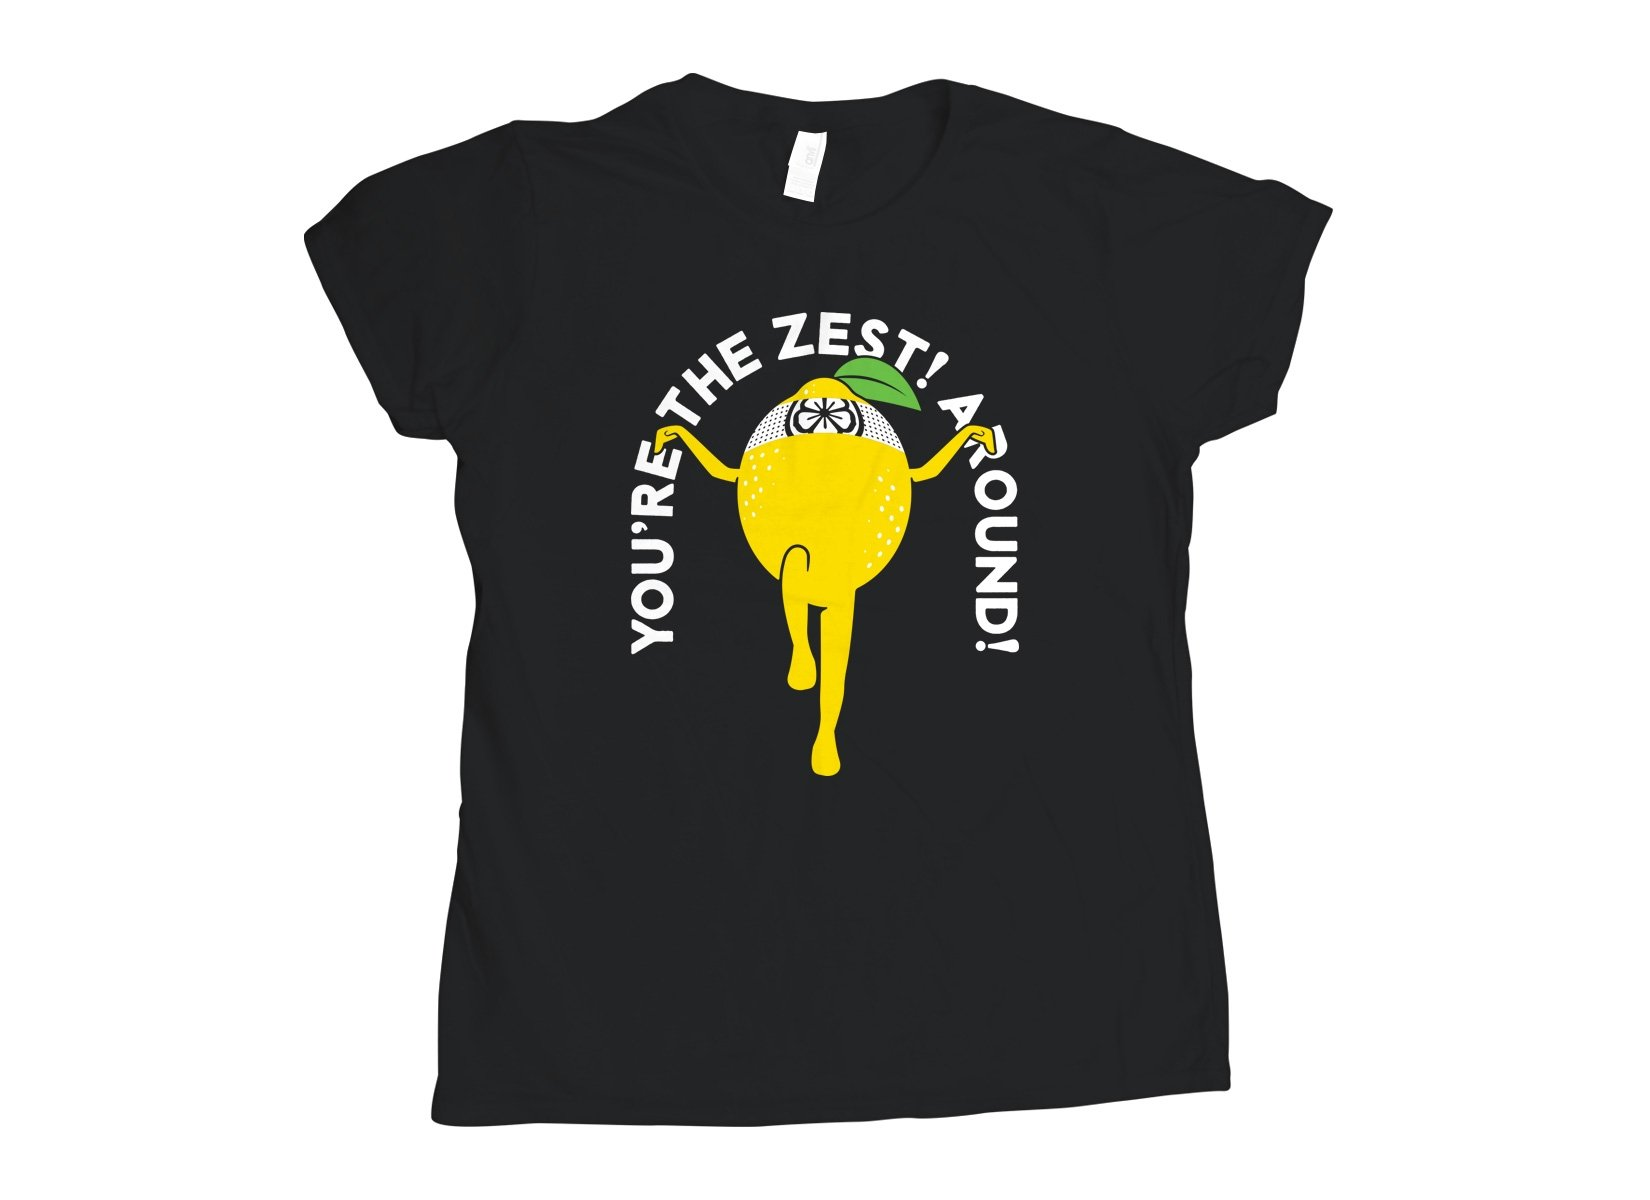 You're The Zest Around on Womens T-Shirt